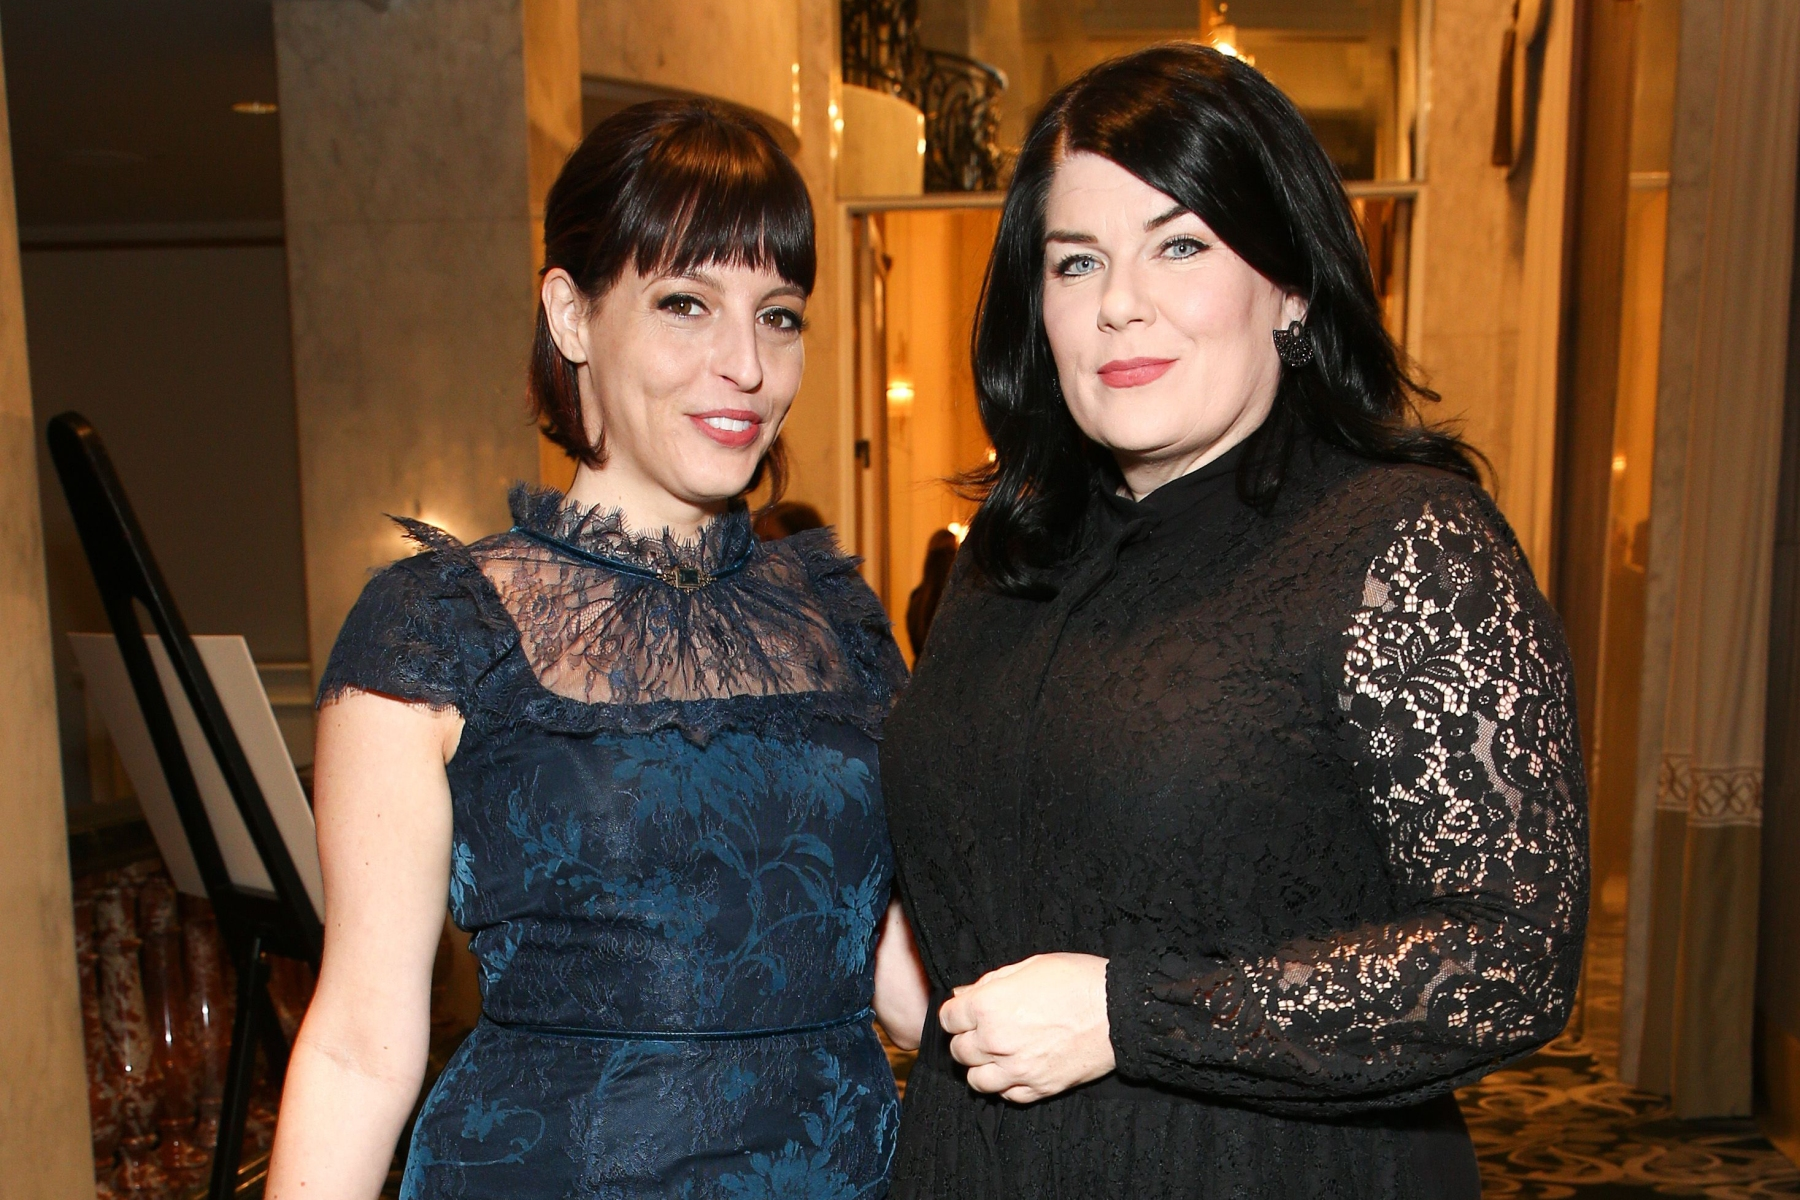 Georgia Hardstark and Karen KilgariffPEN America Gala, Inside, Los Angeles, USA - 02 Nov 2018